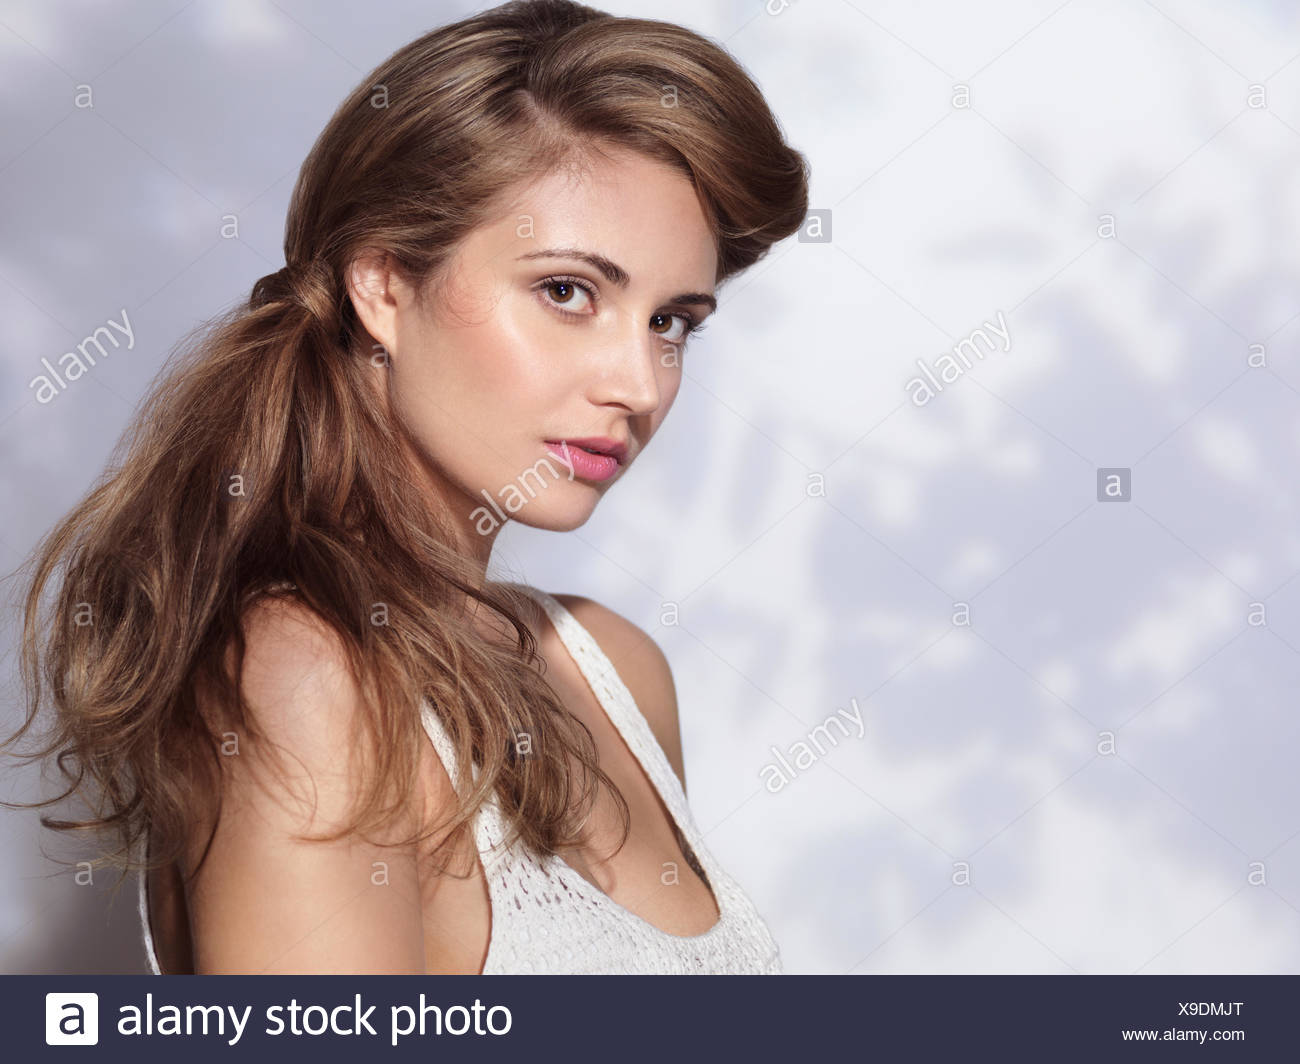 Young Woman With Natural Makeup And Classic Hairstyle Stock Photo